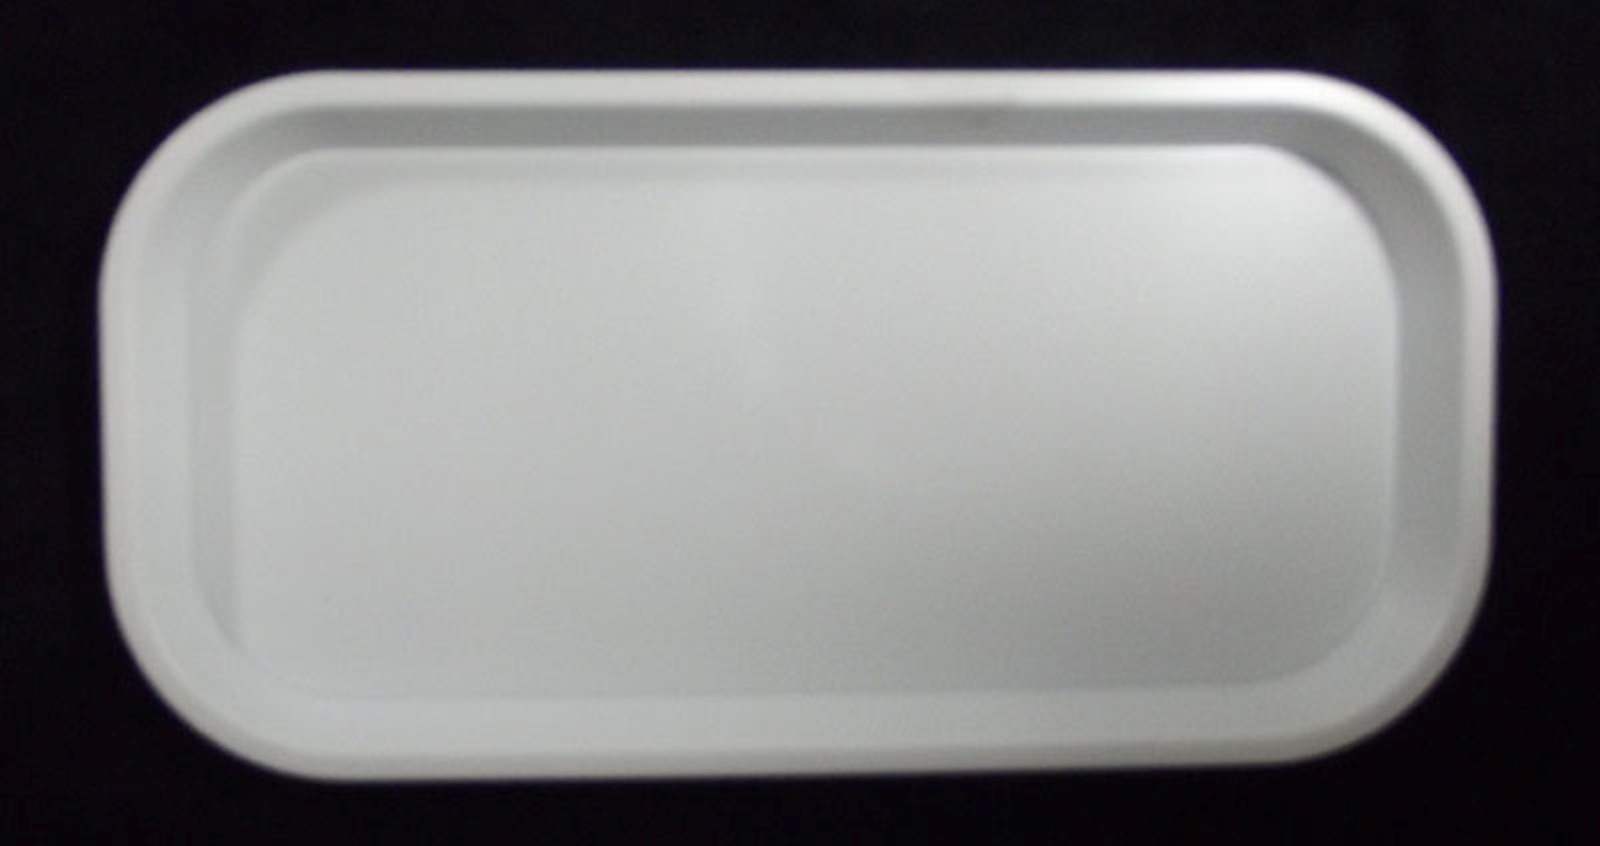 KB7 Plastic Catering Tray - Seconds